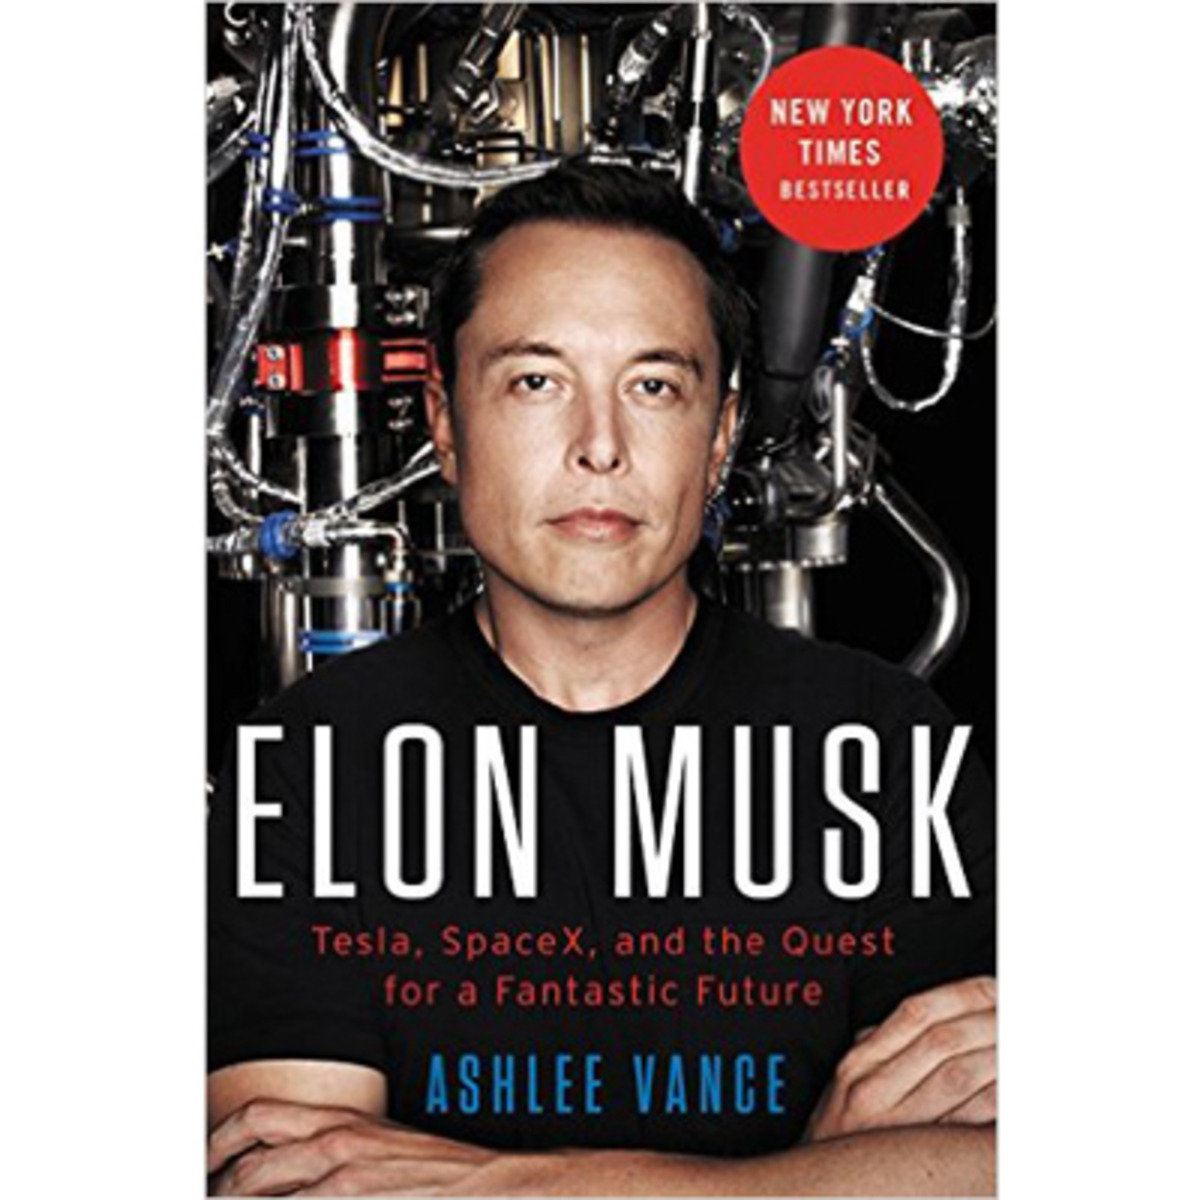 ELON MUSK: Tesla, SpaceX, and the Quest for a Fantastic Future 9780062301239